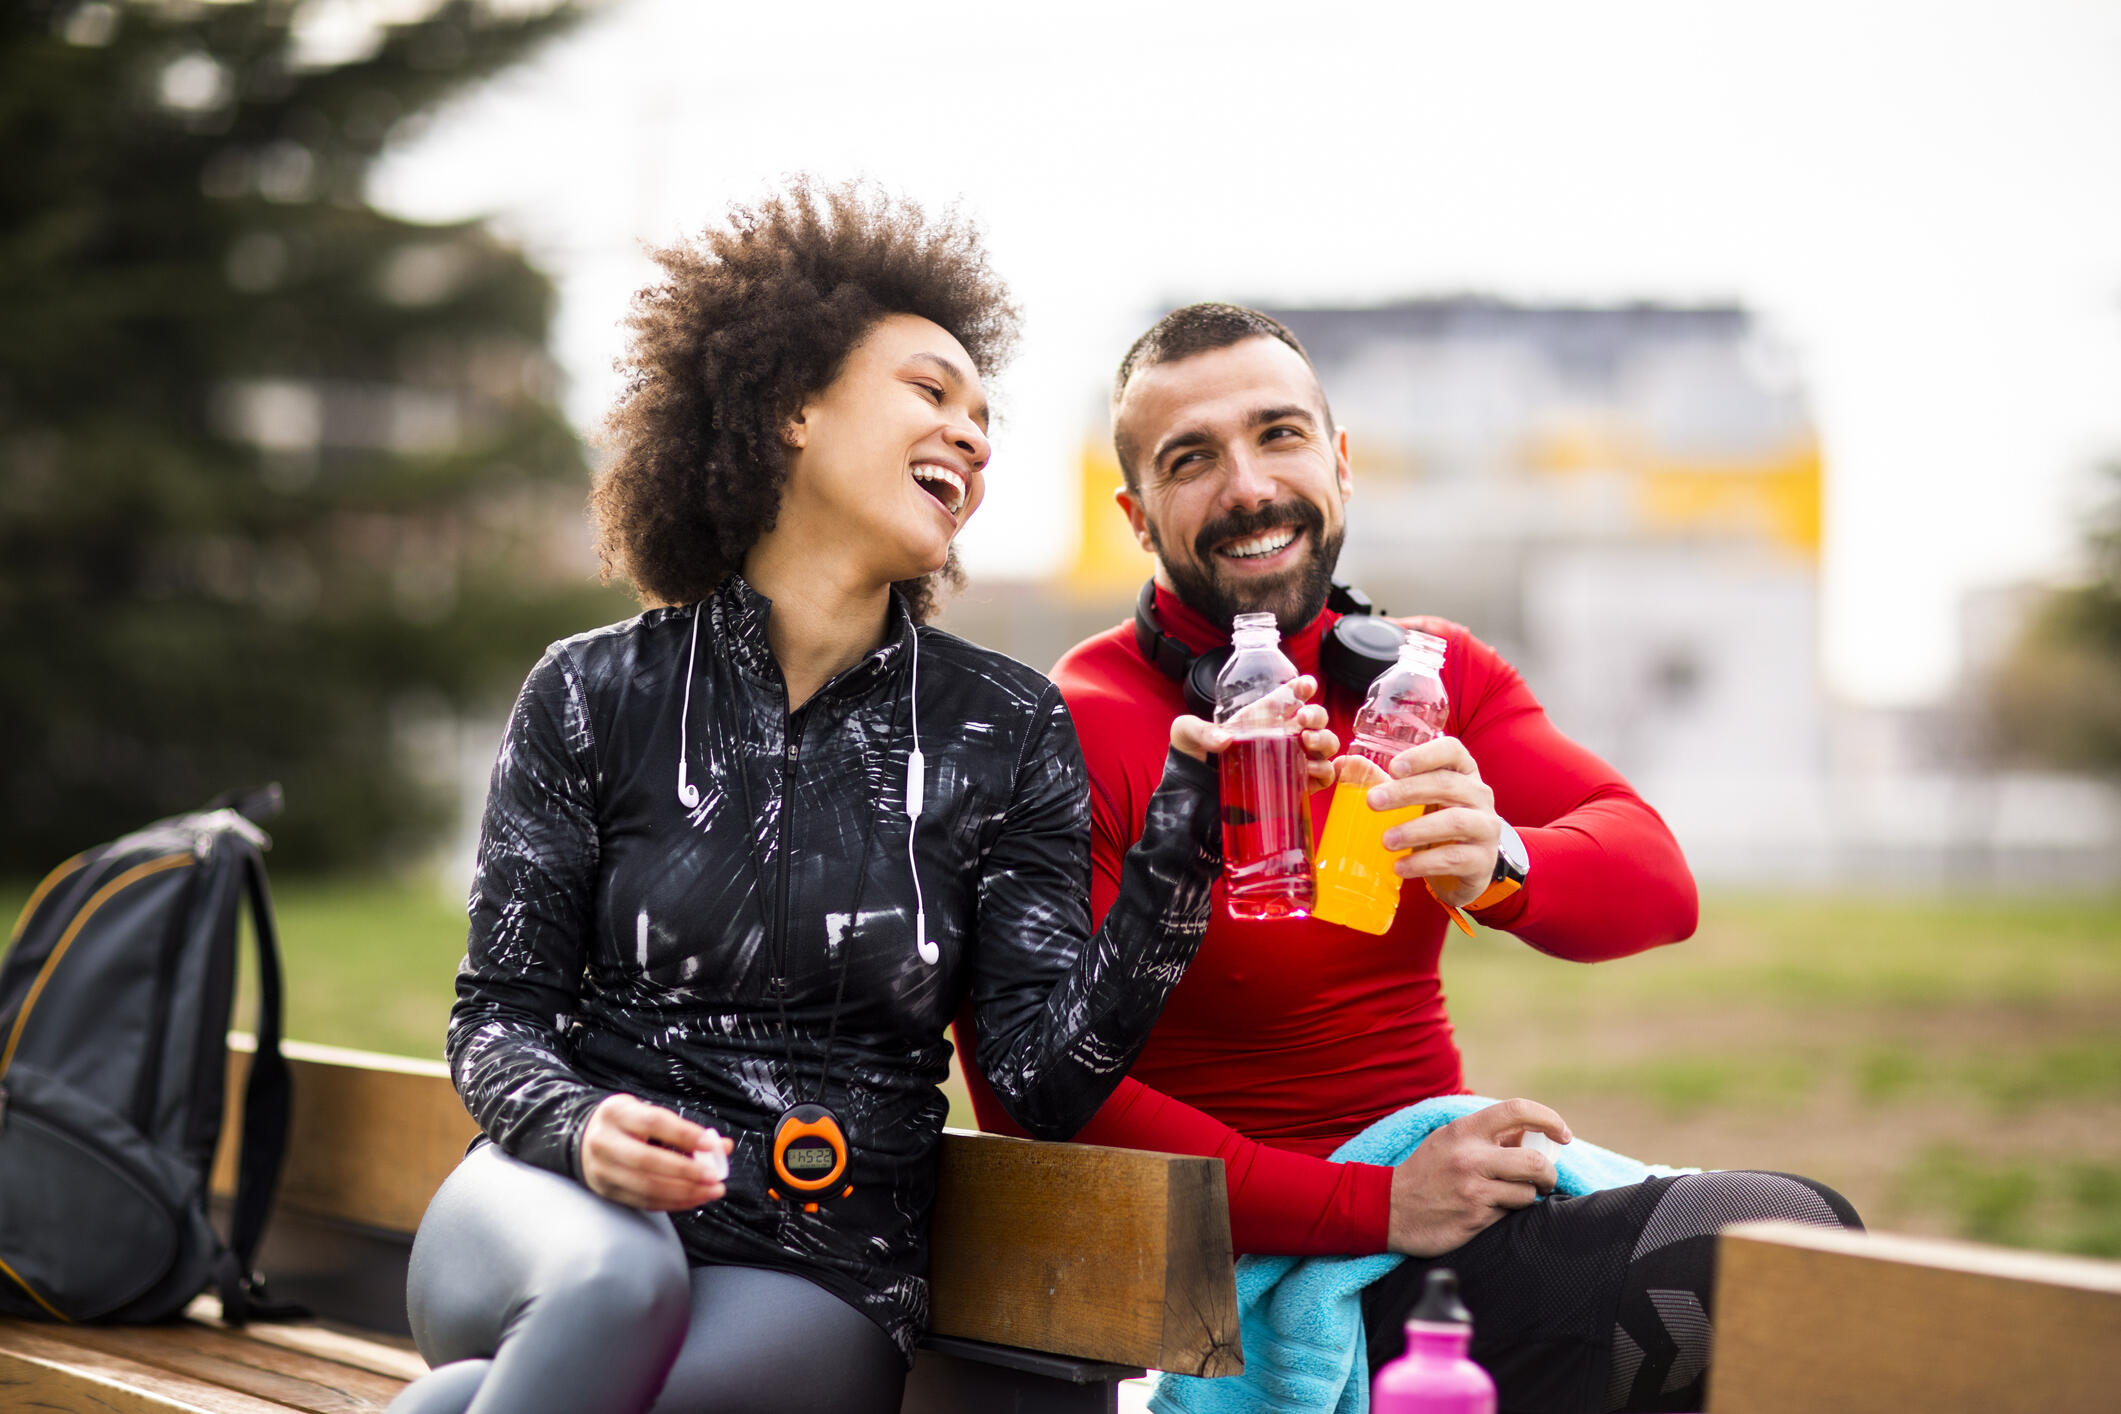 drinking sports drinks after exercise